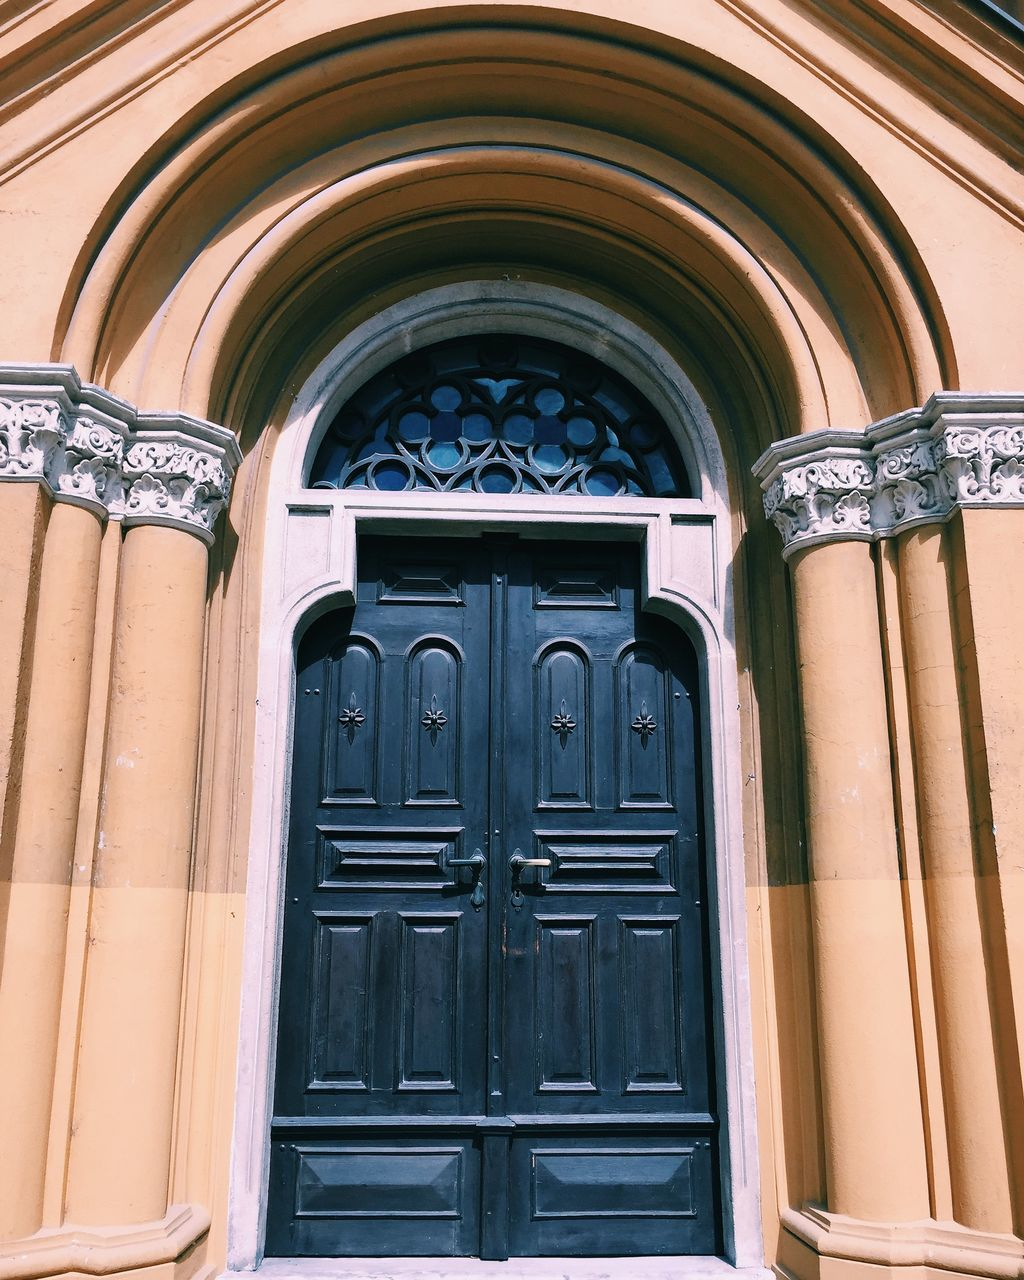 architecture, arch, door, built structure, window, no people, place of worship, day, building exterior, outdoors, close-up